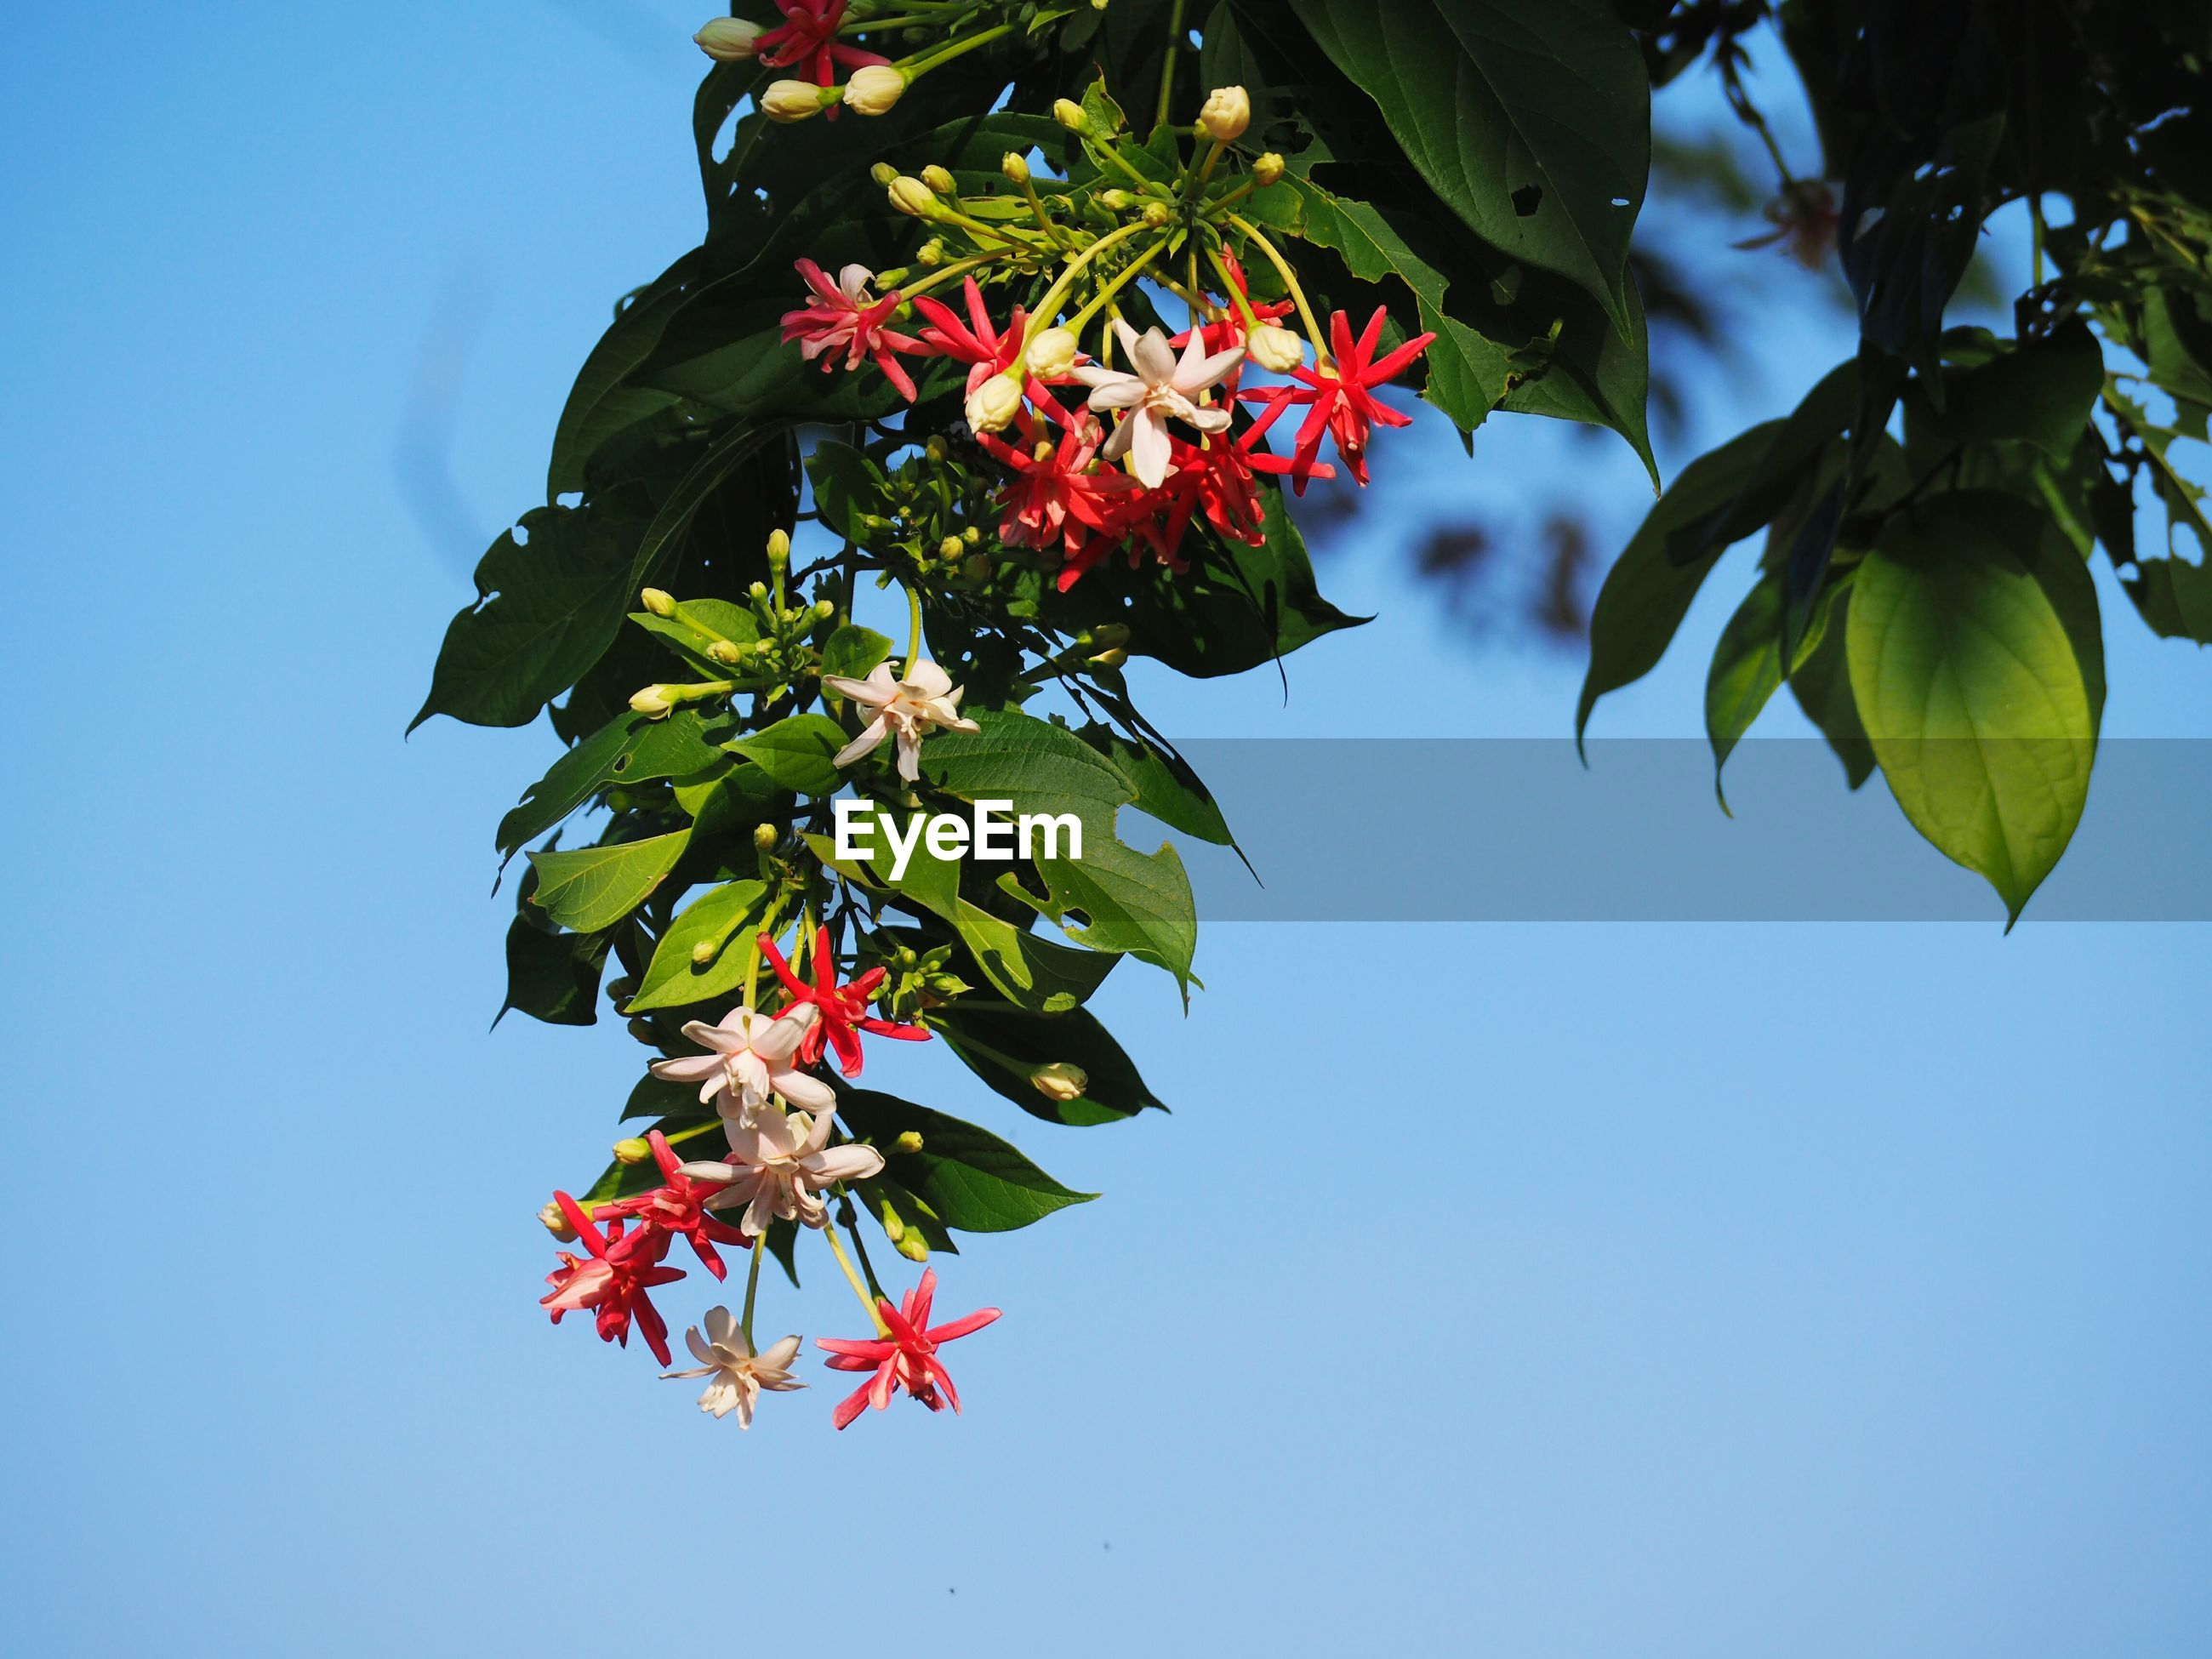 LOW ANGLE VIEW OF FLOWERING PLANT ON TREE AGAINST SKY